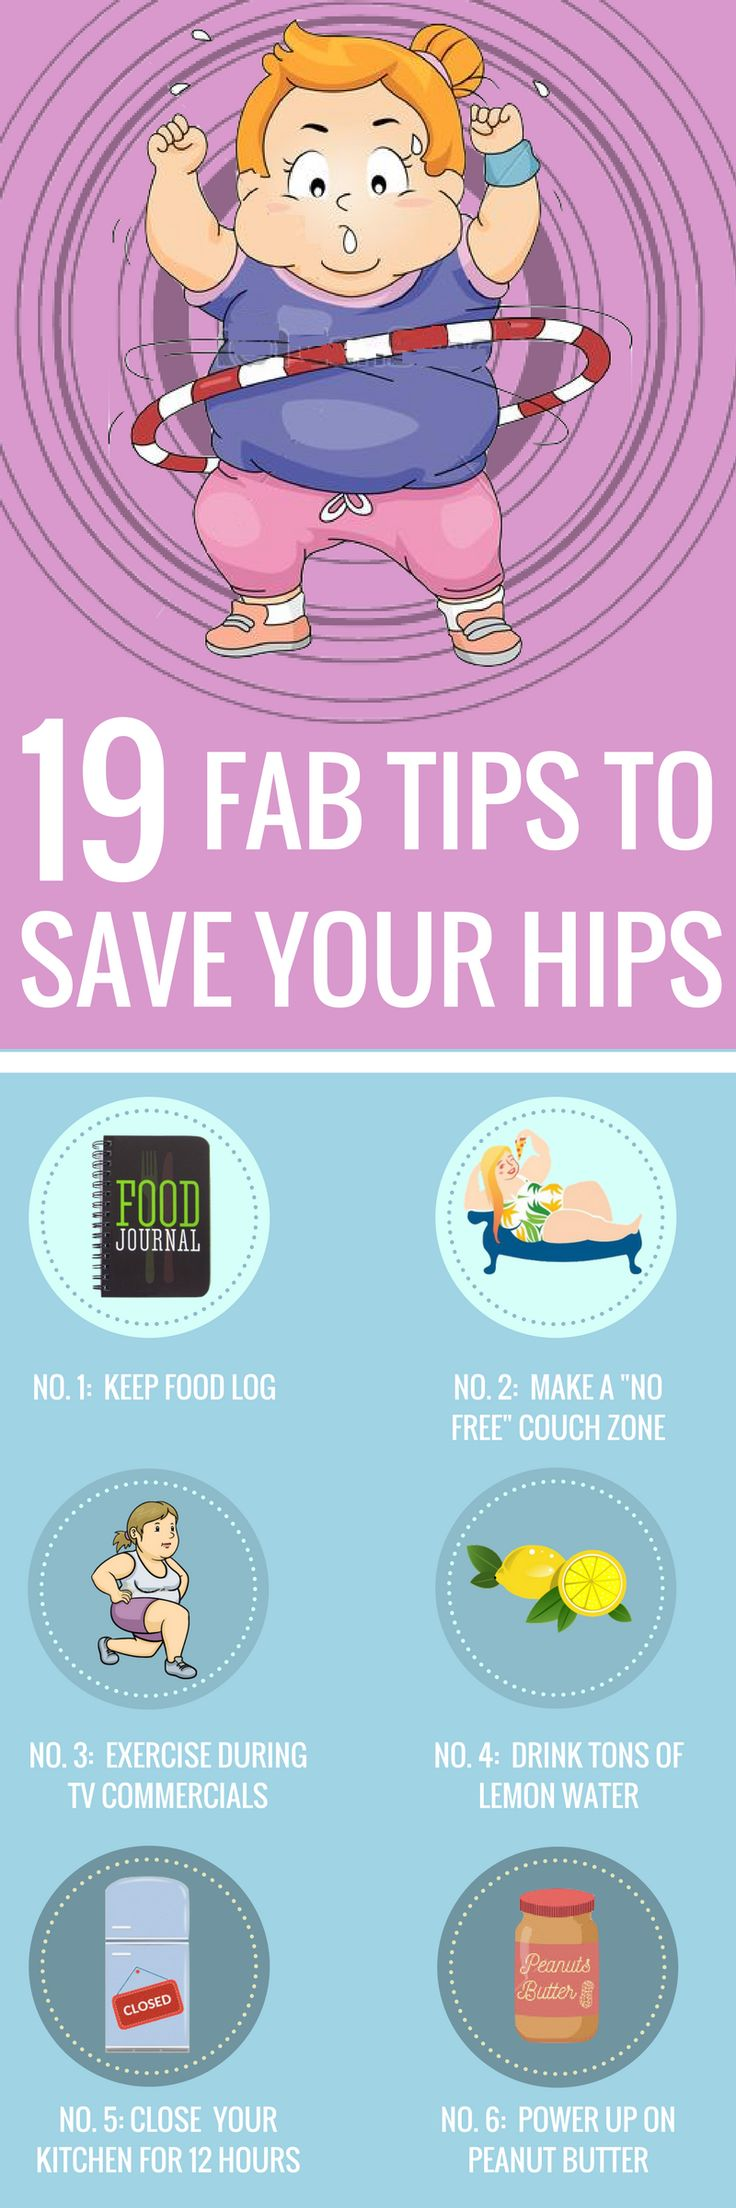 19 FAB TIPS to SAVE YOUR HIPS